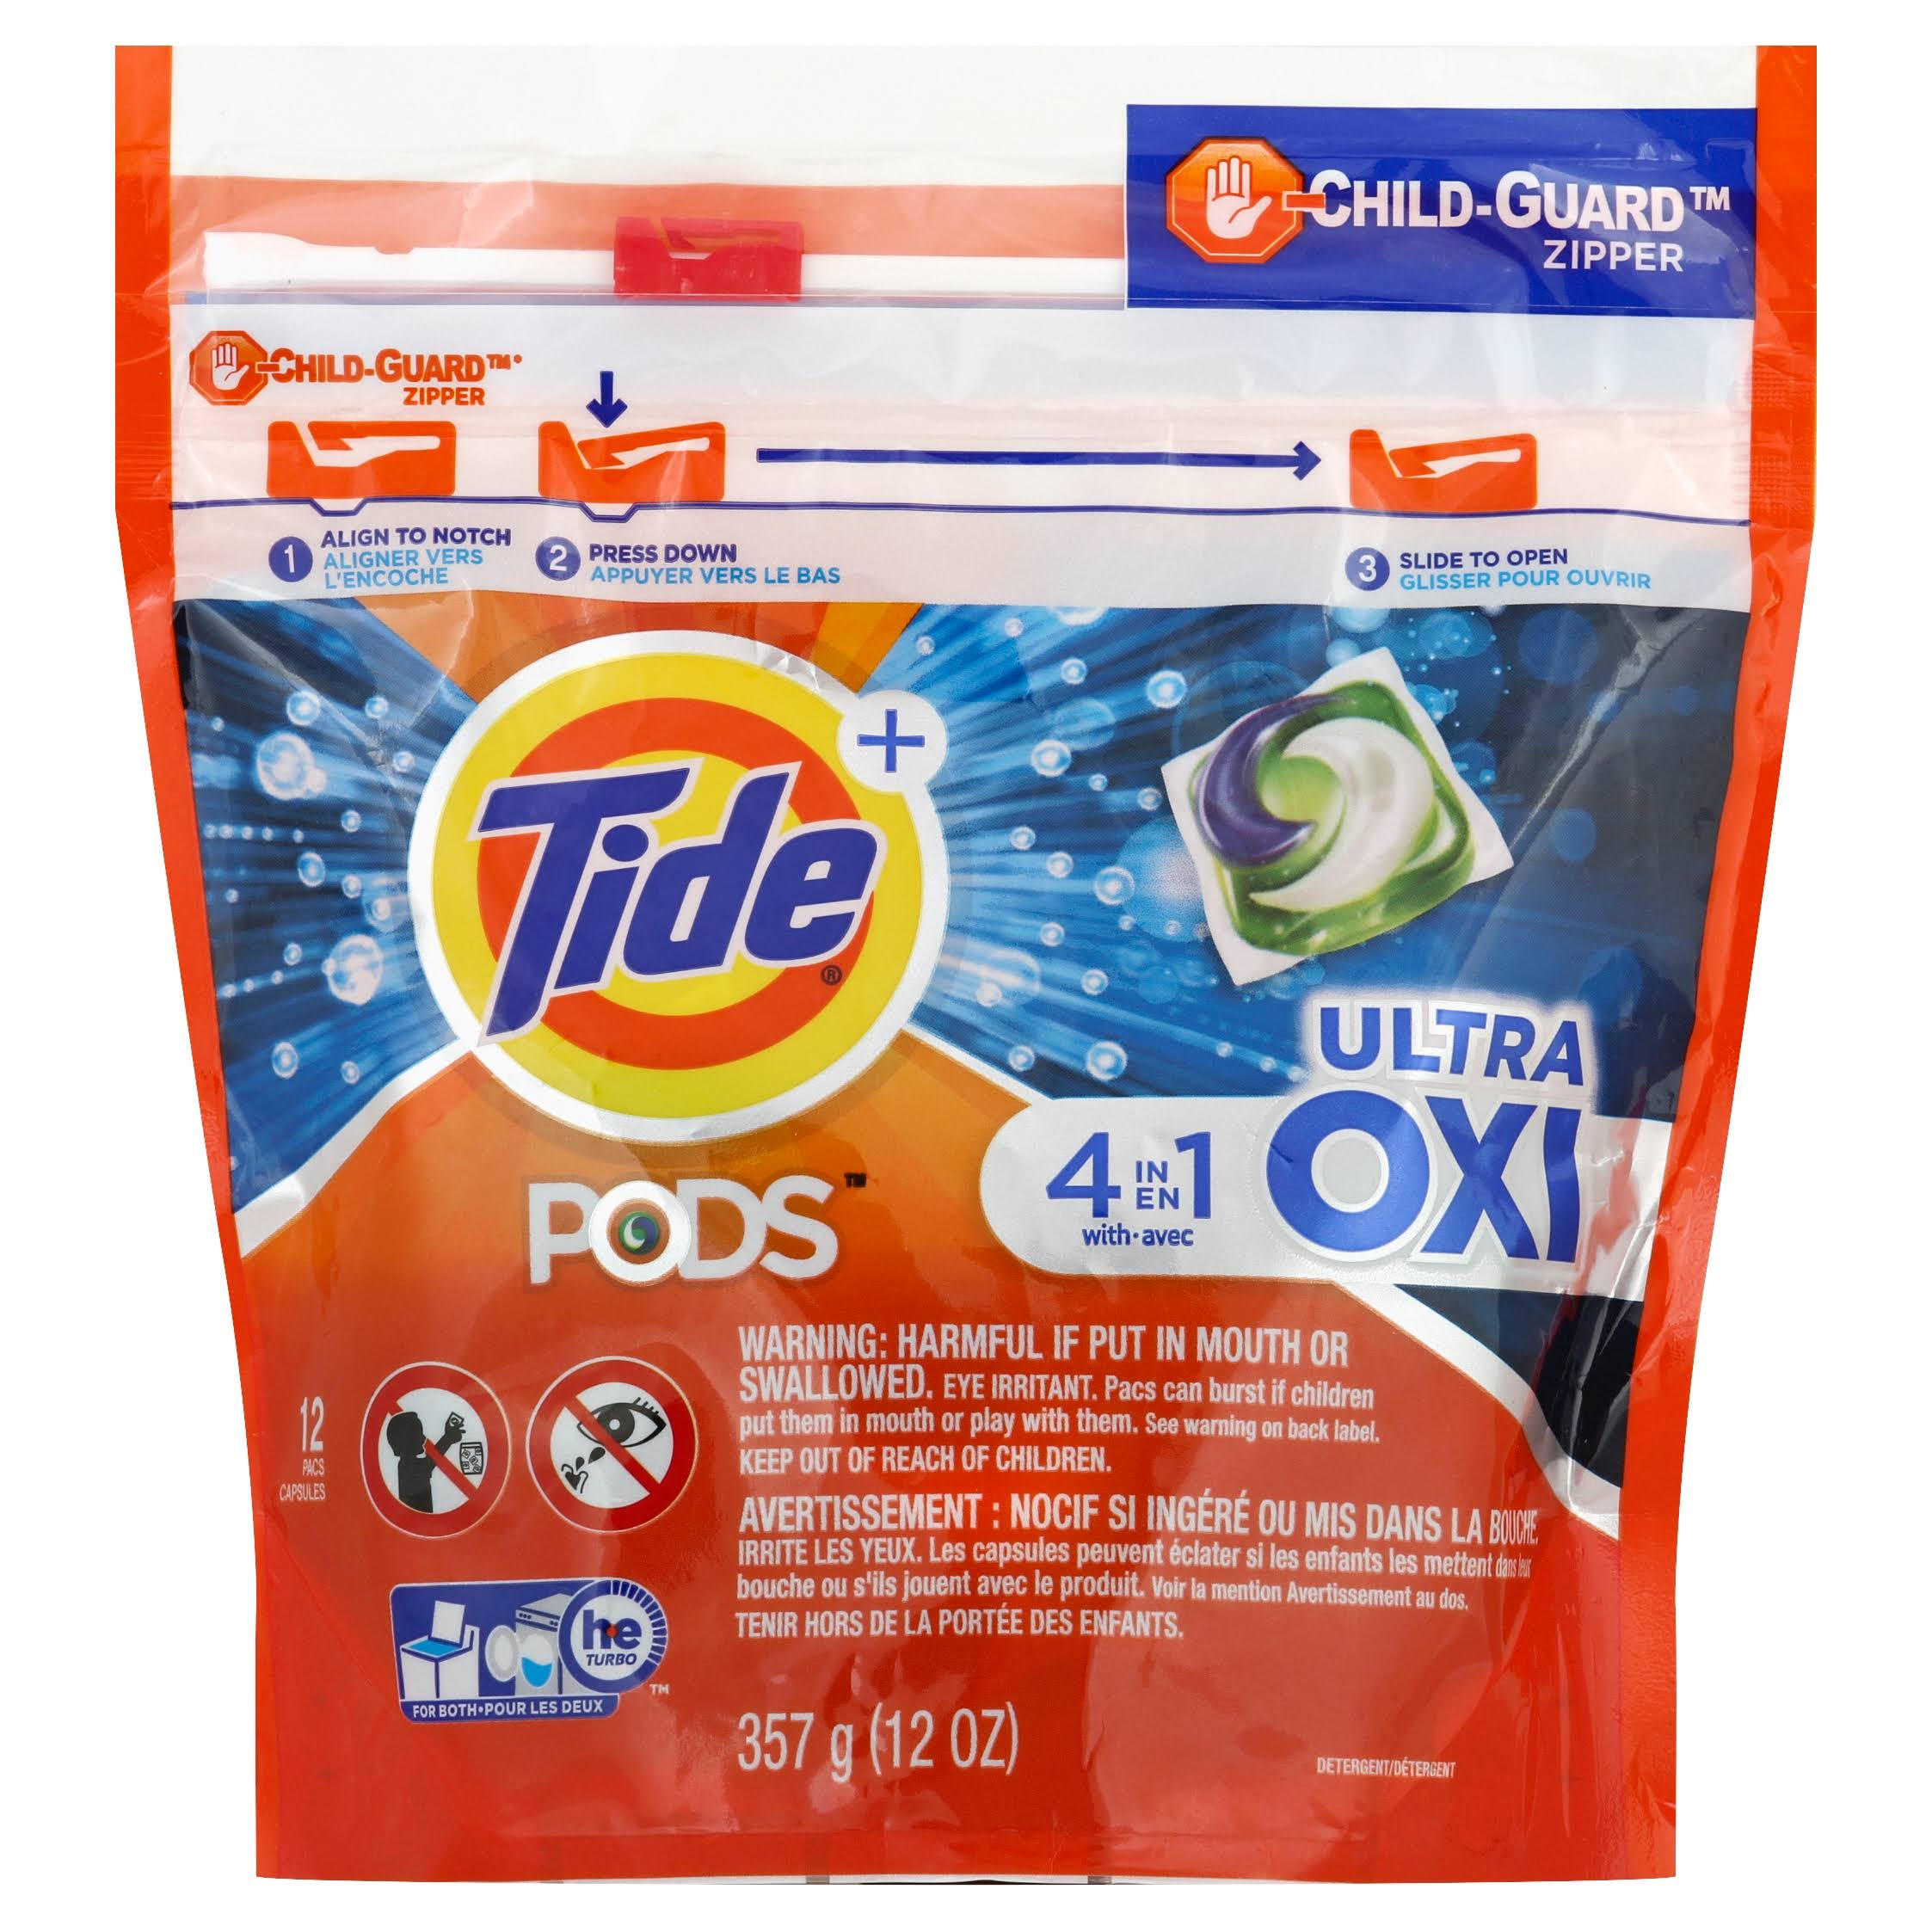 Tide Plus Pods Detergent, 4 in 1, Ultra Oxi - 12 pacs, 12 oz